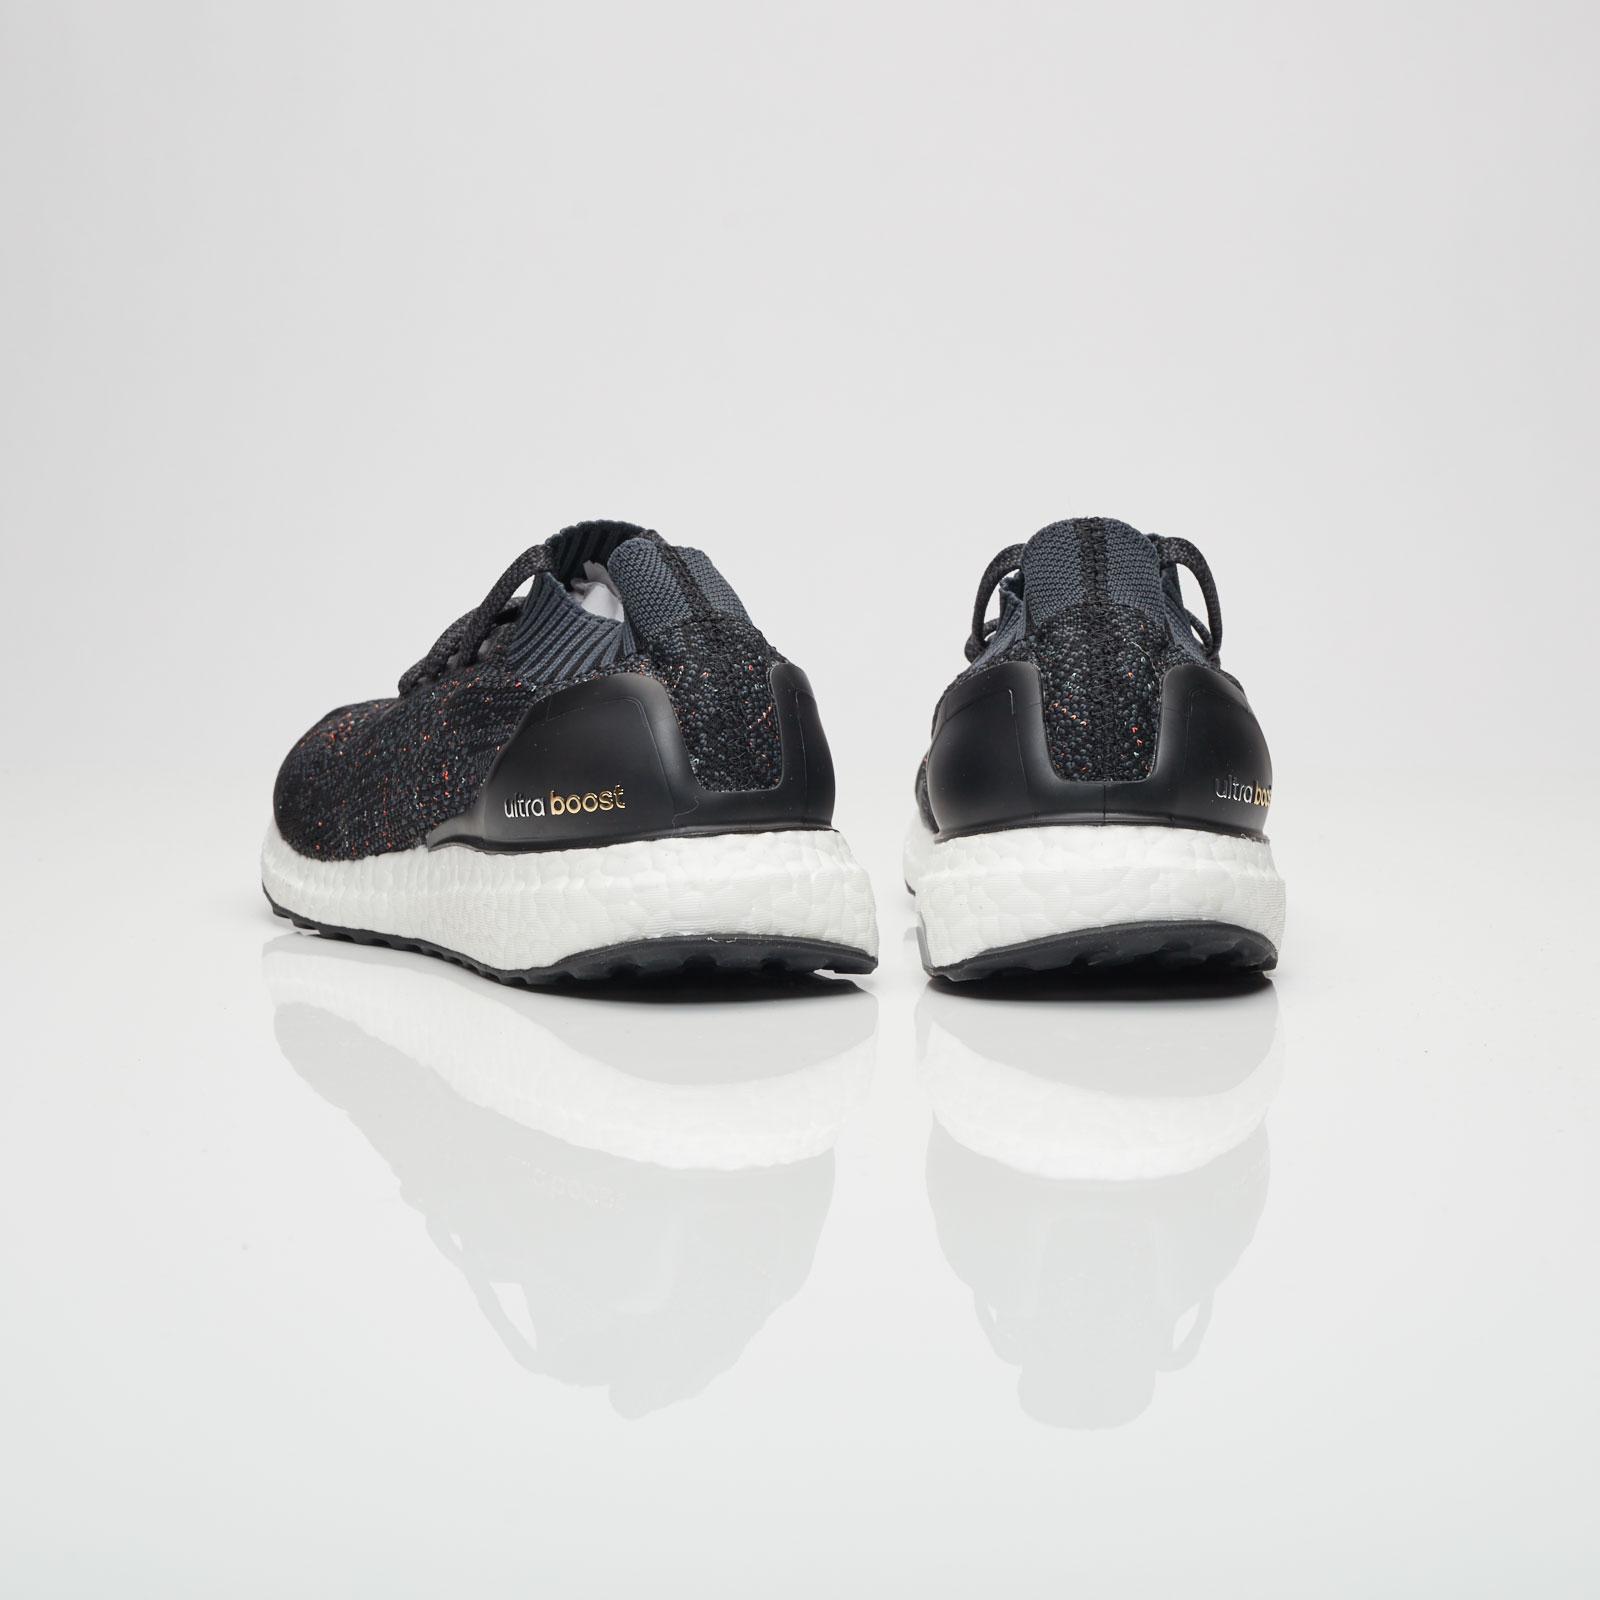 ad2787cf15bc3 adidas Ultra Boost Uncaged - Ba9796 - Sneakersnstuff